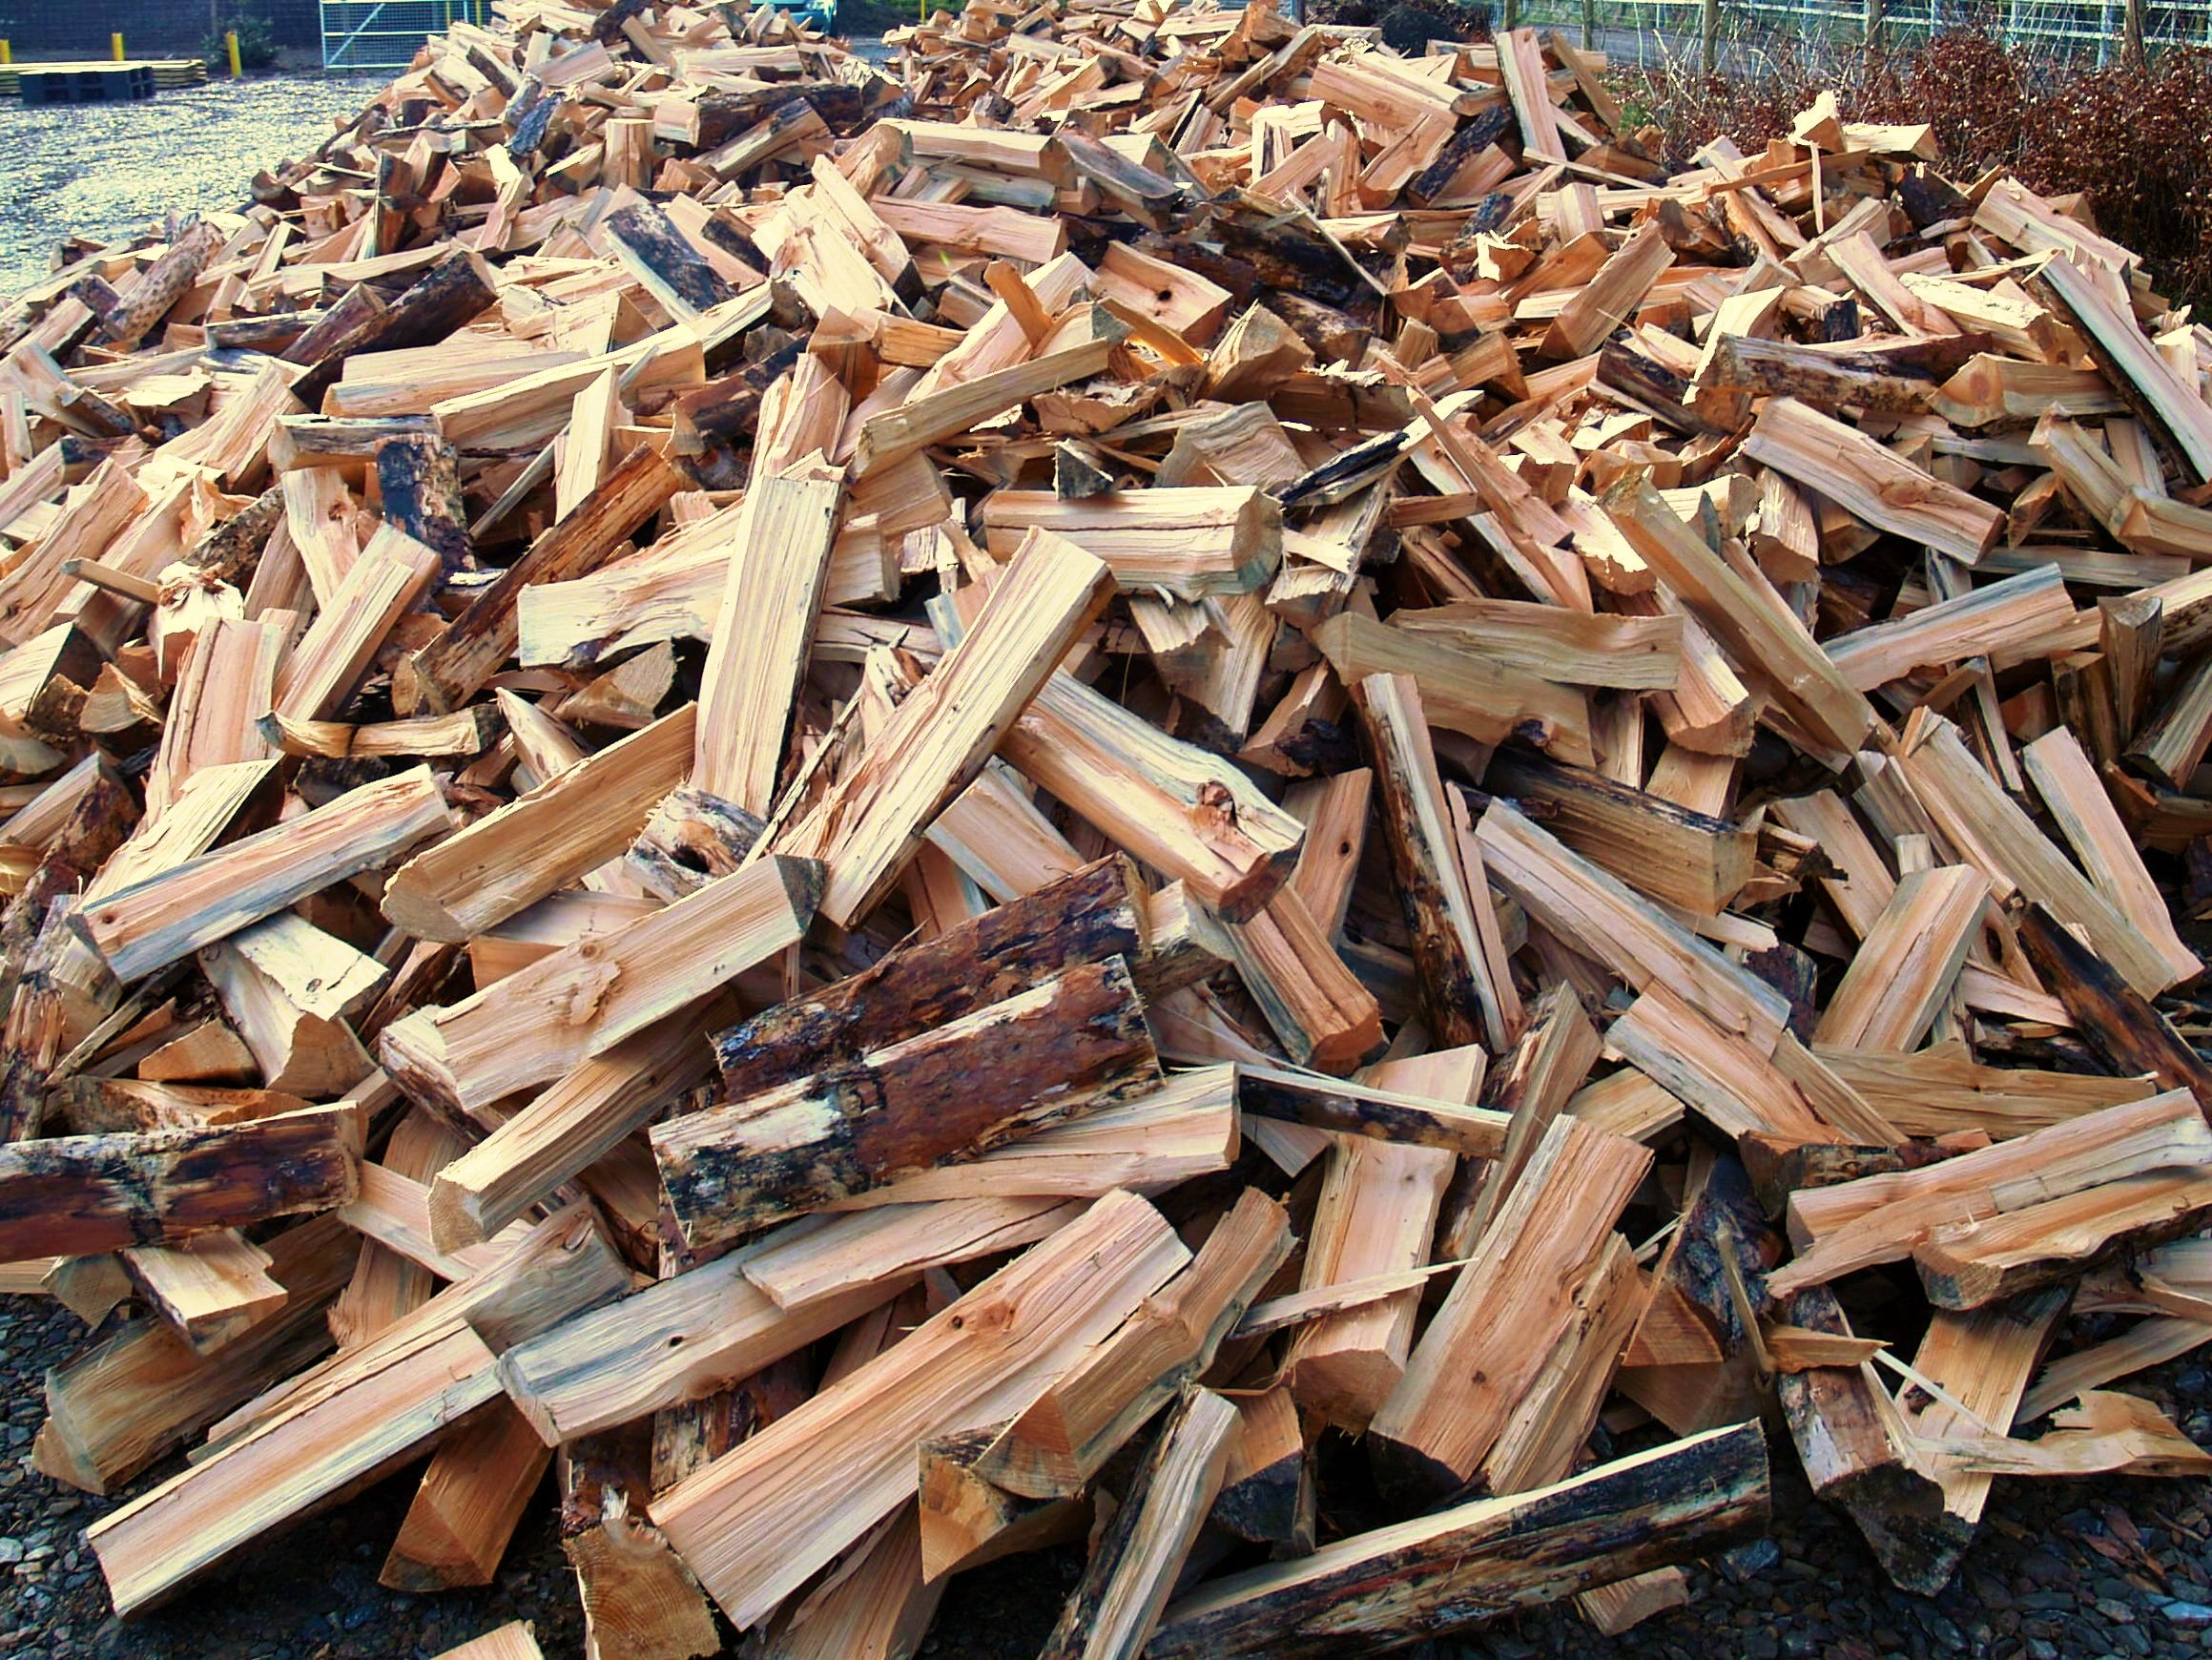 Product: logs loose, unseasoned